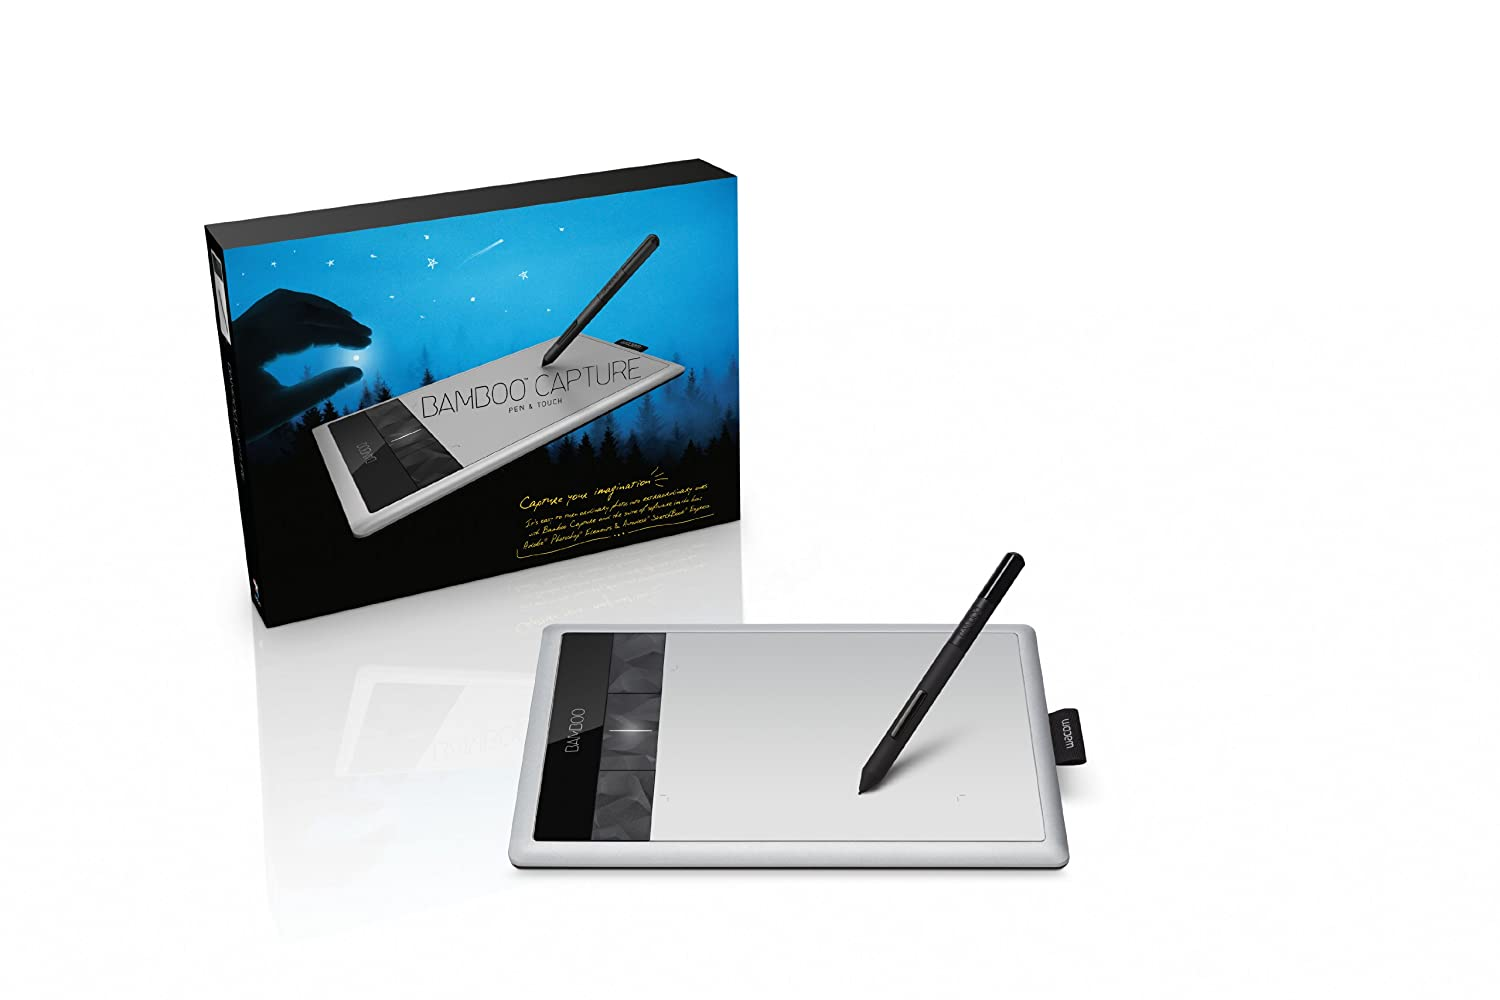 amazon com wacom bamboo capture pen and touch tablet cth470 rh amazon com Wacom Bamboo Packaging Old Wacom Bamboo